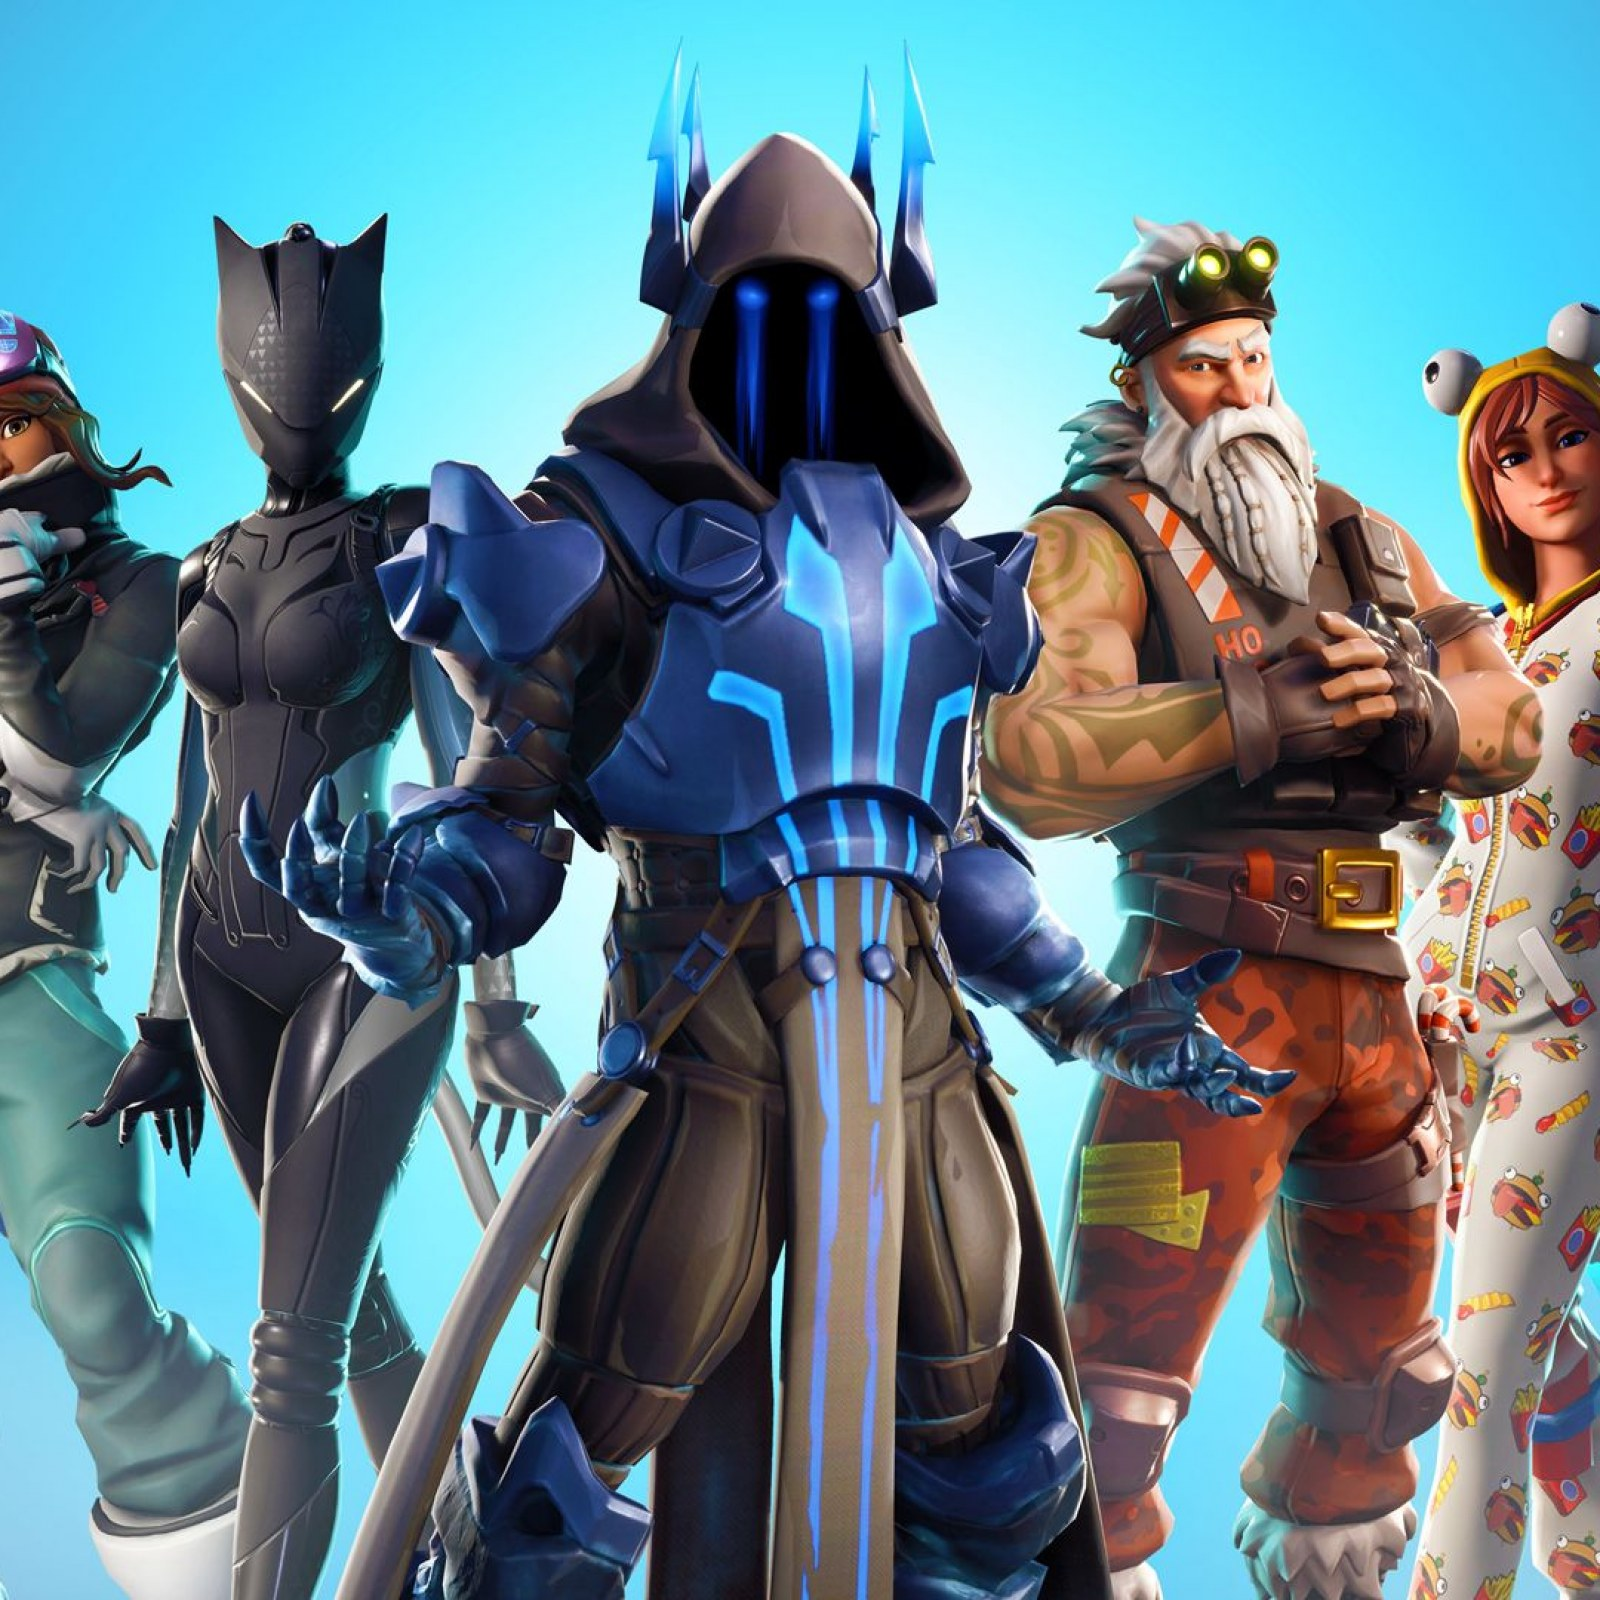 Fortnite' Holiday Gift Guide 2018 - Console Bundles & Toy Ideas for Fans